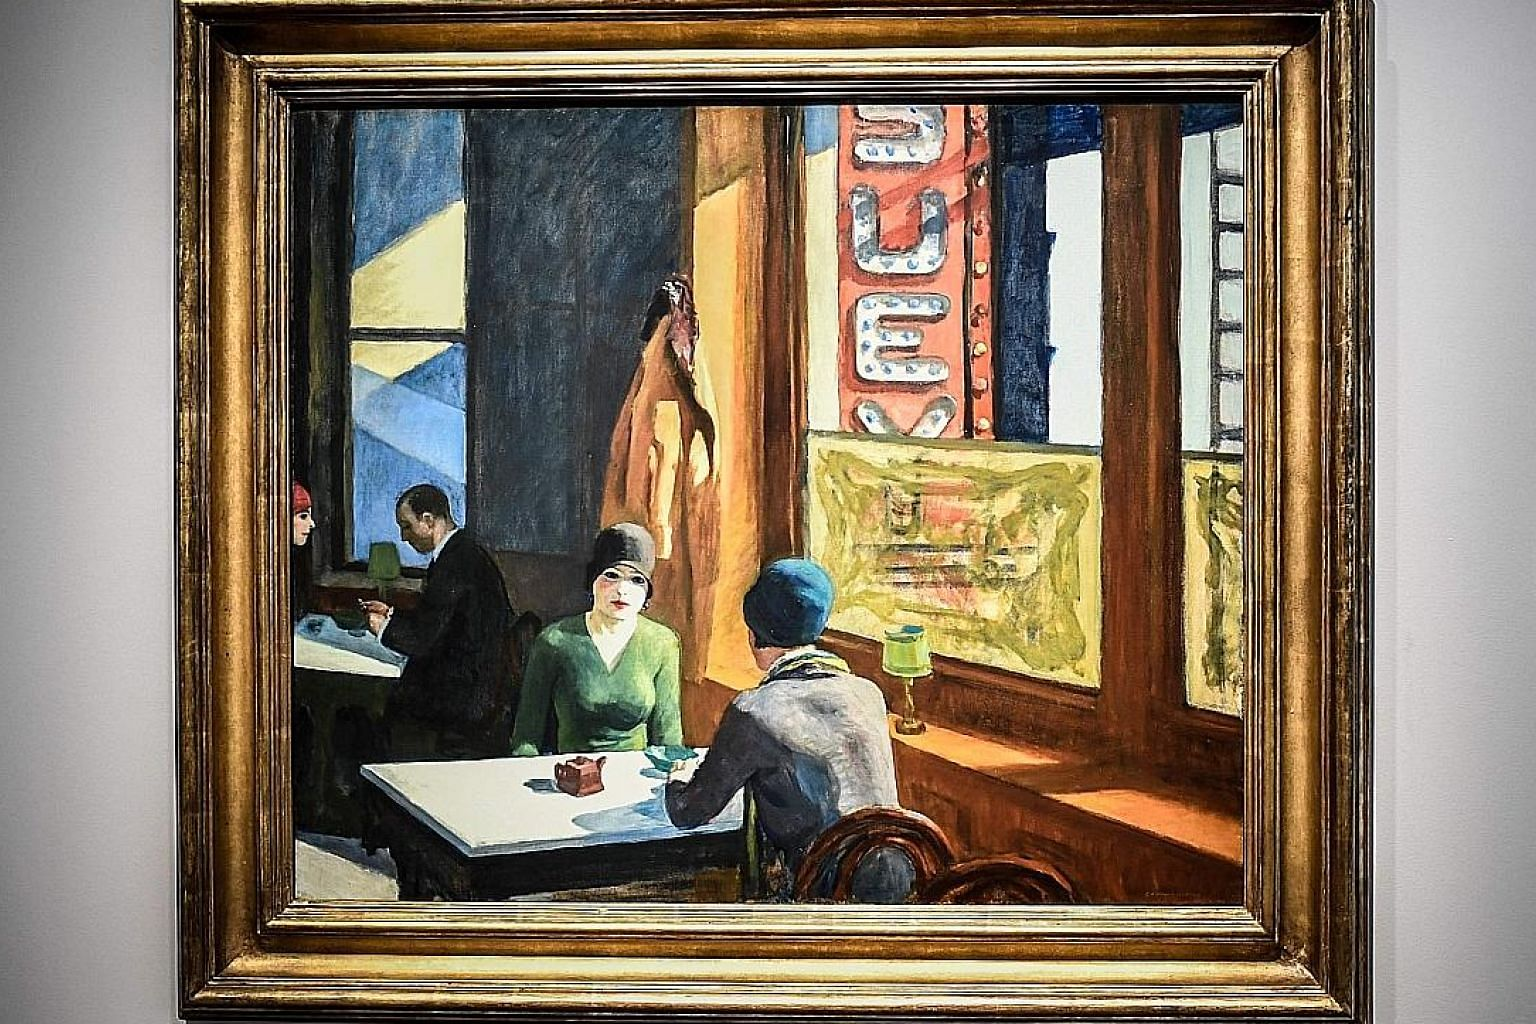 Chop Suey, a much-exhibited painting of two young women seated in a sunlit Chinese restaurant, was sold for a record price at a Christie's auction.